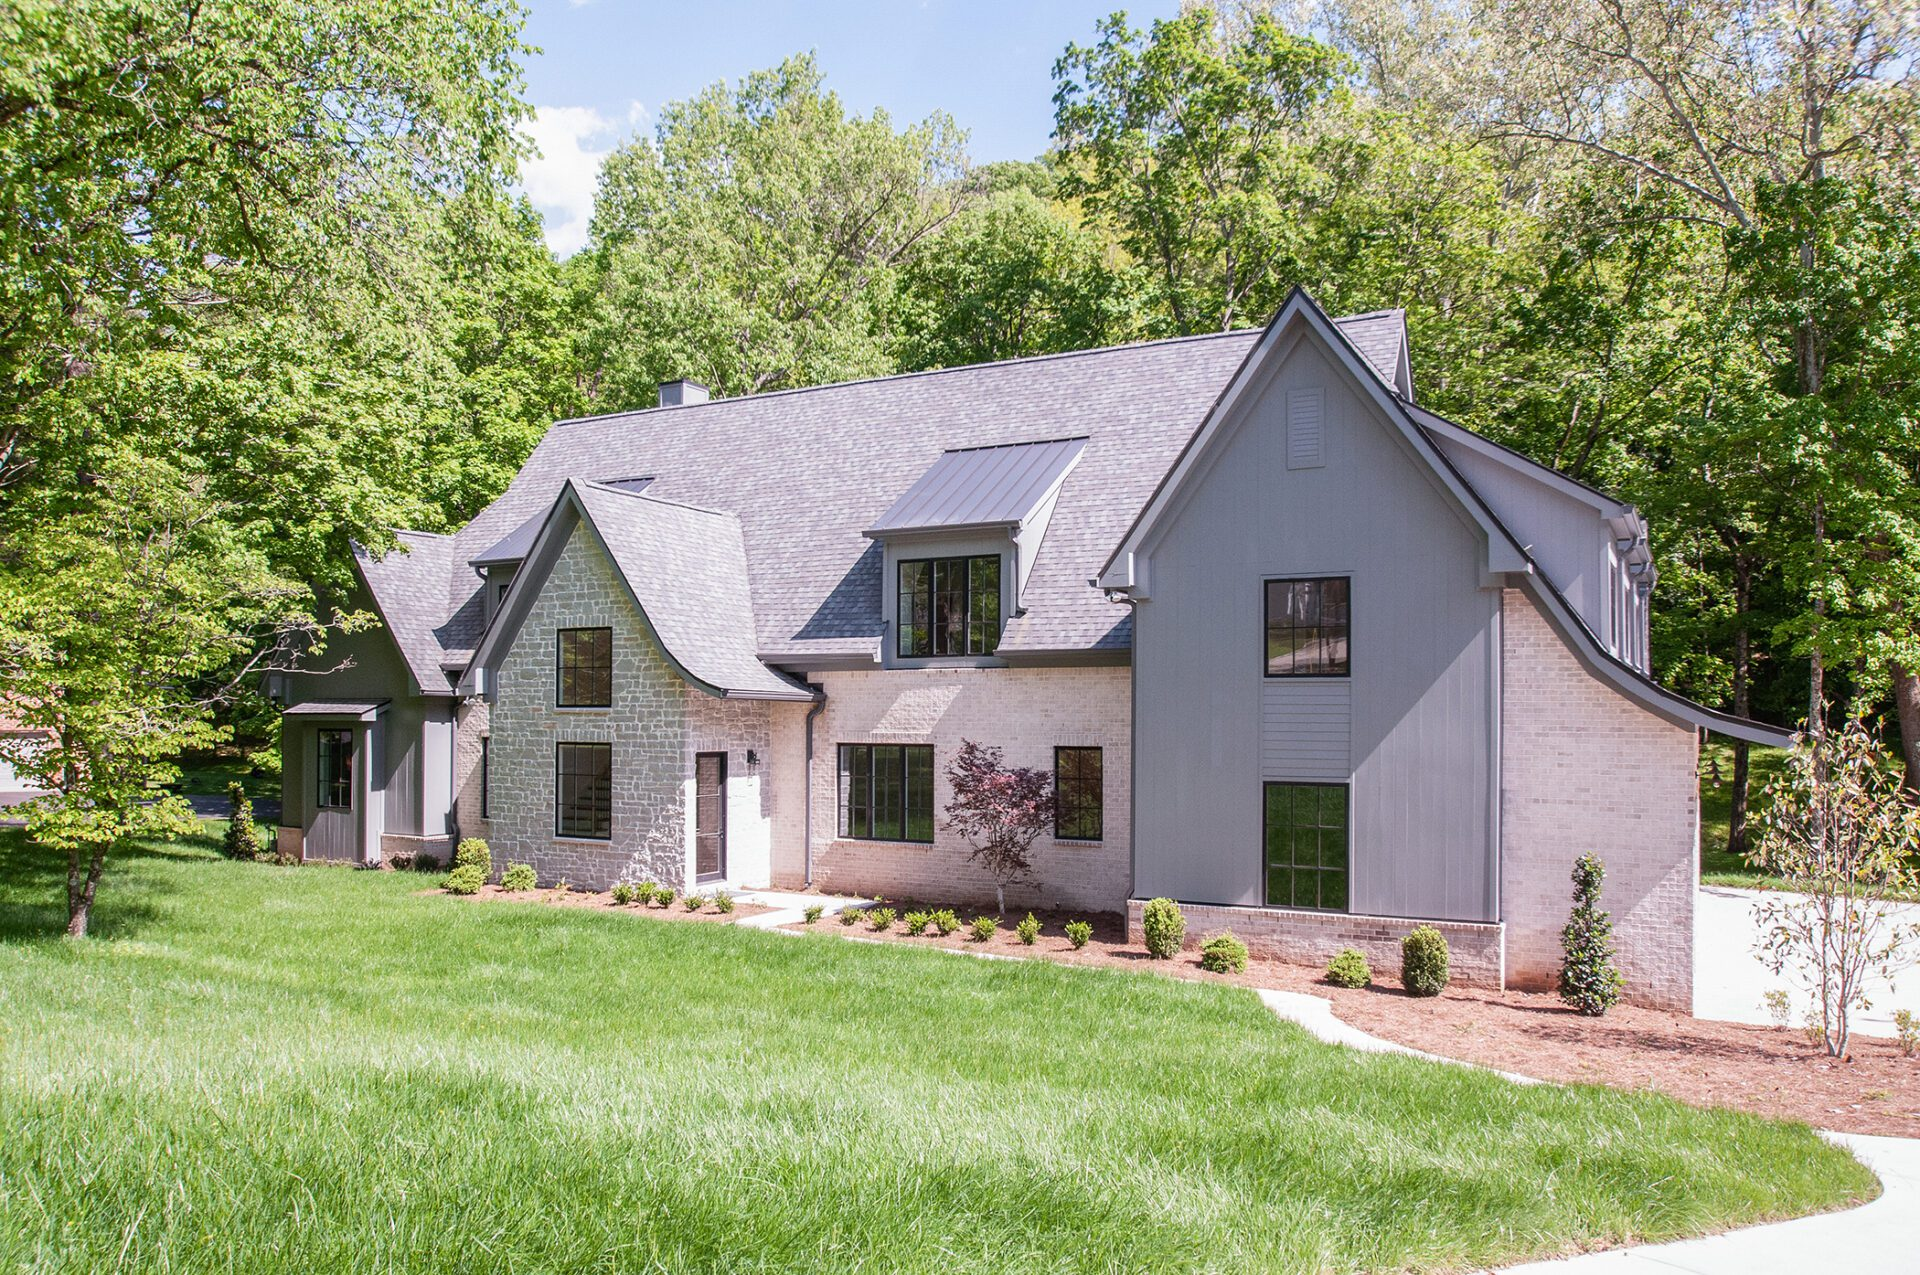 Home builders in Nashville, Brentwood, and Franklin, TN built this brand new modern home